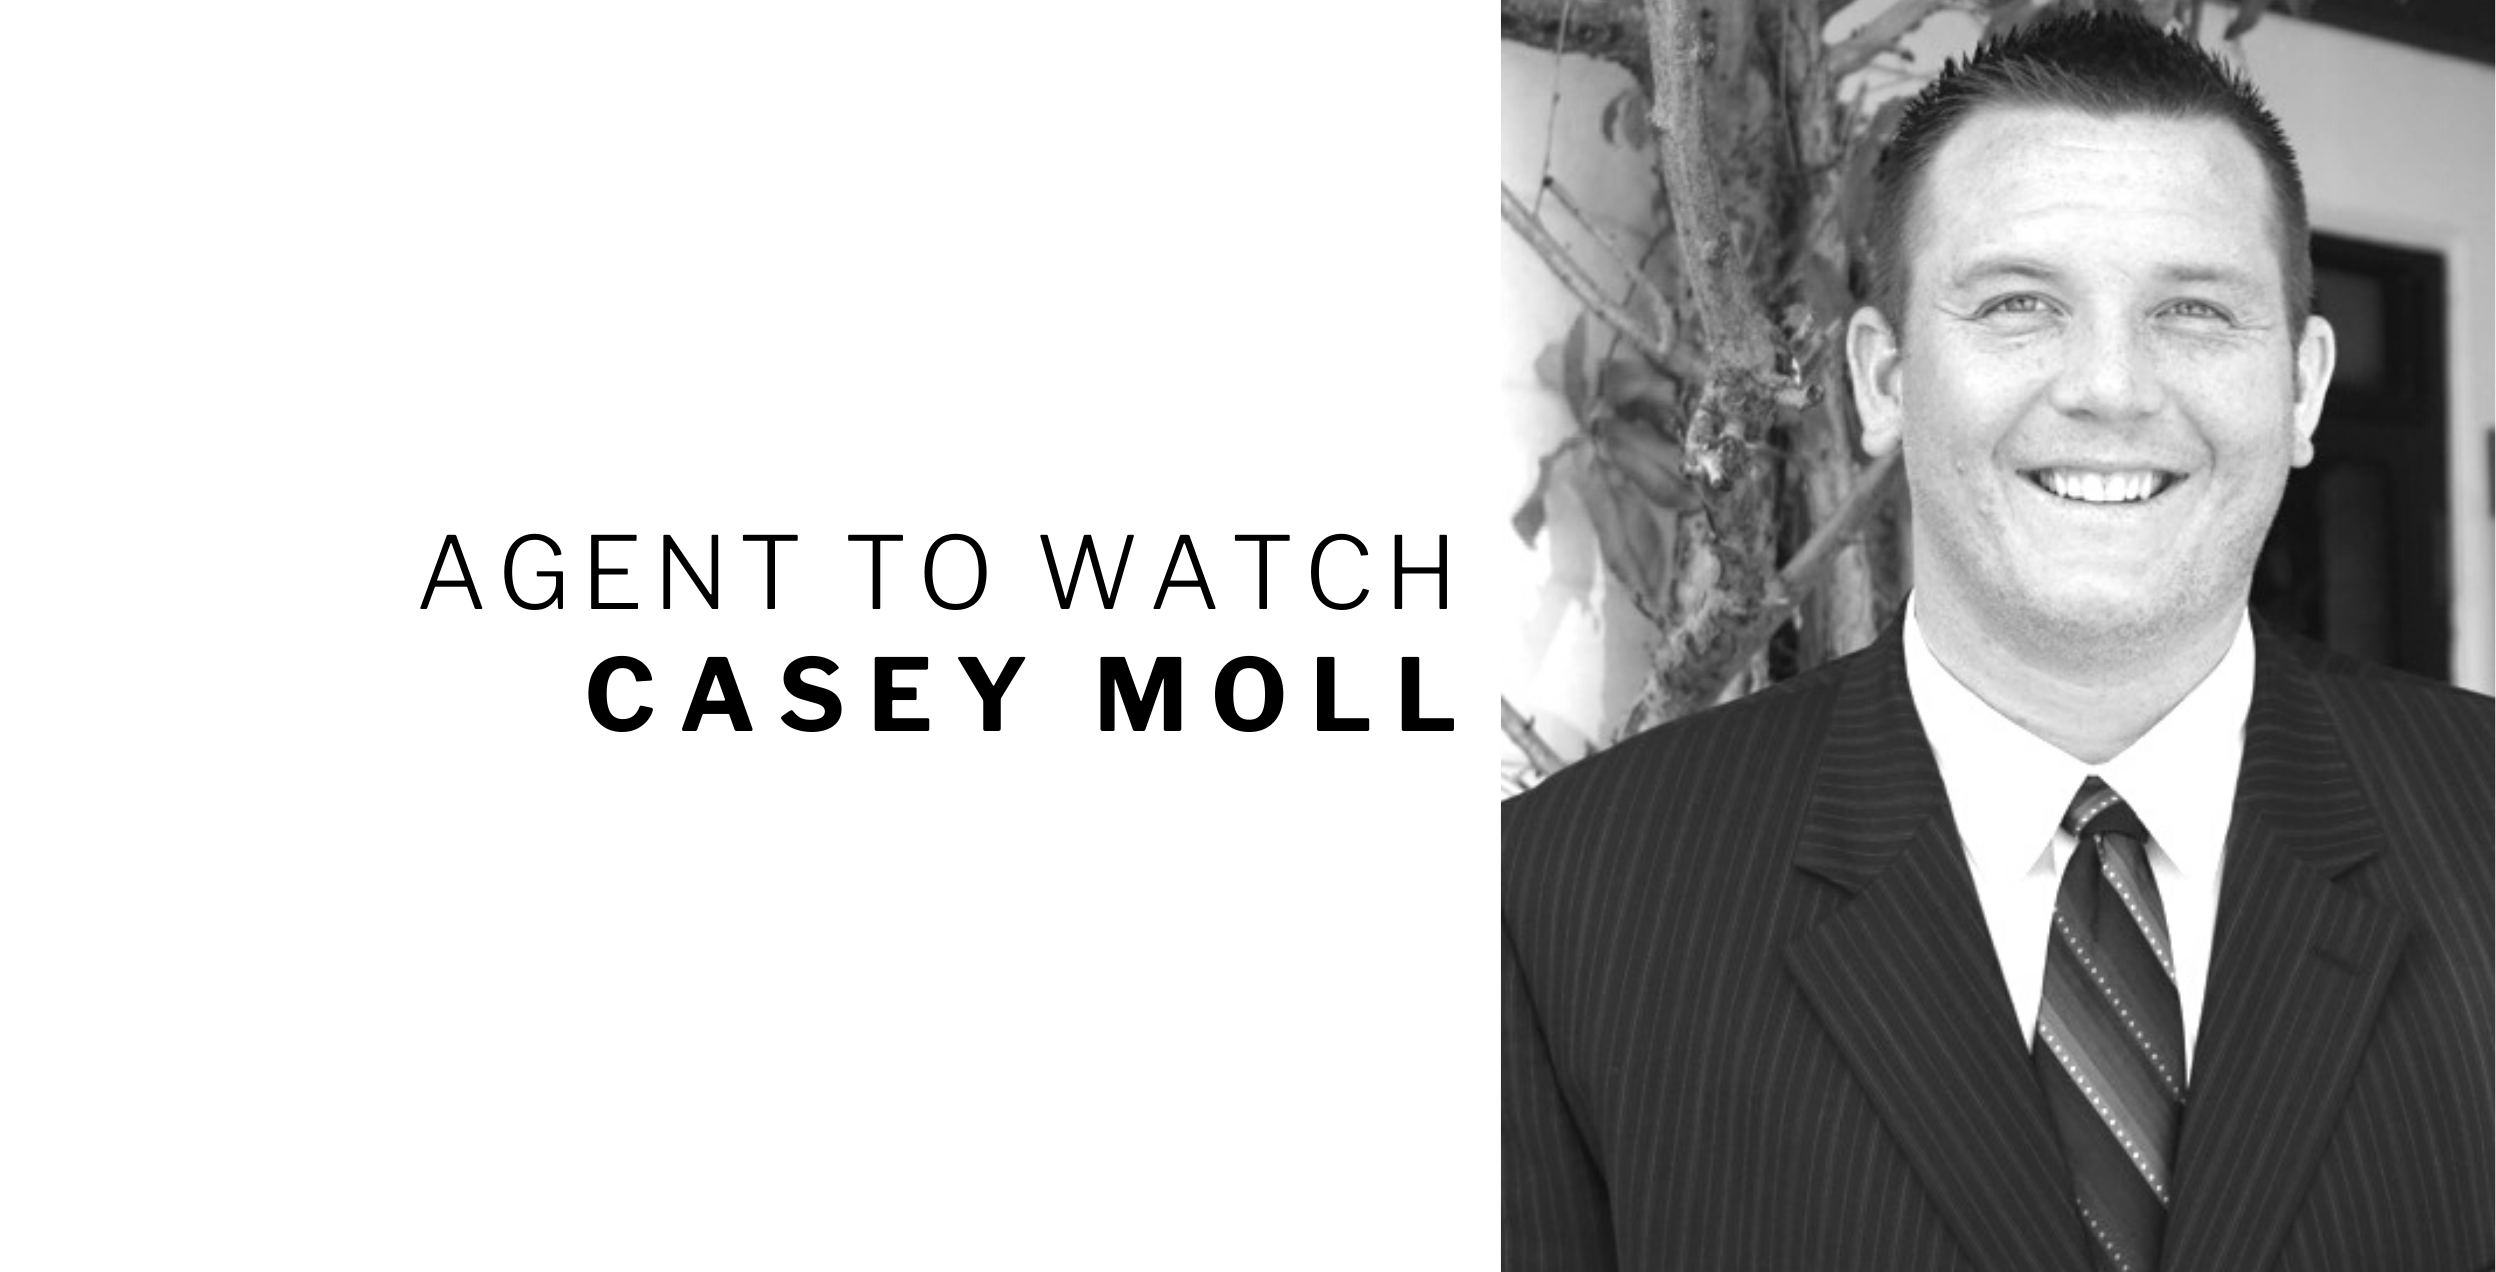 Agent to Watch Casey Moll